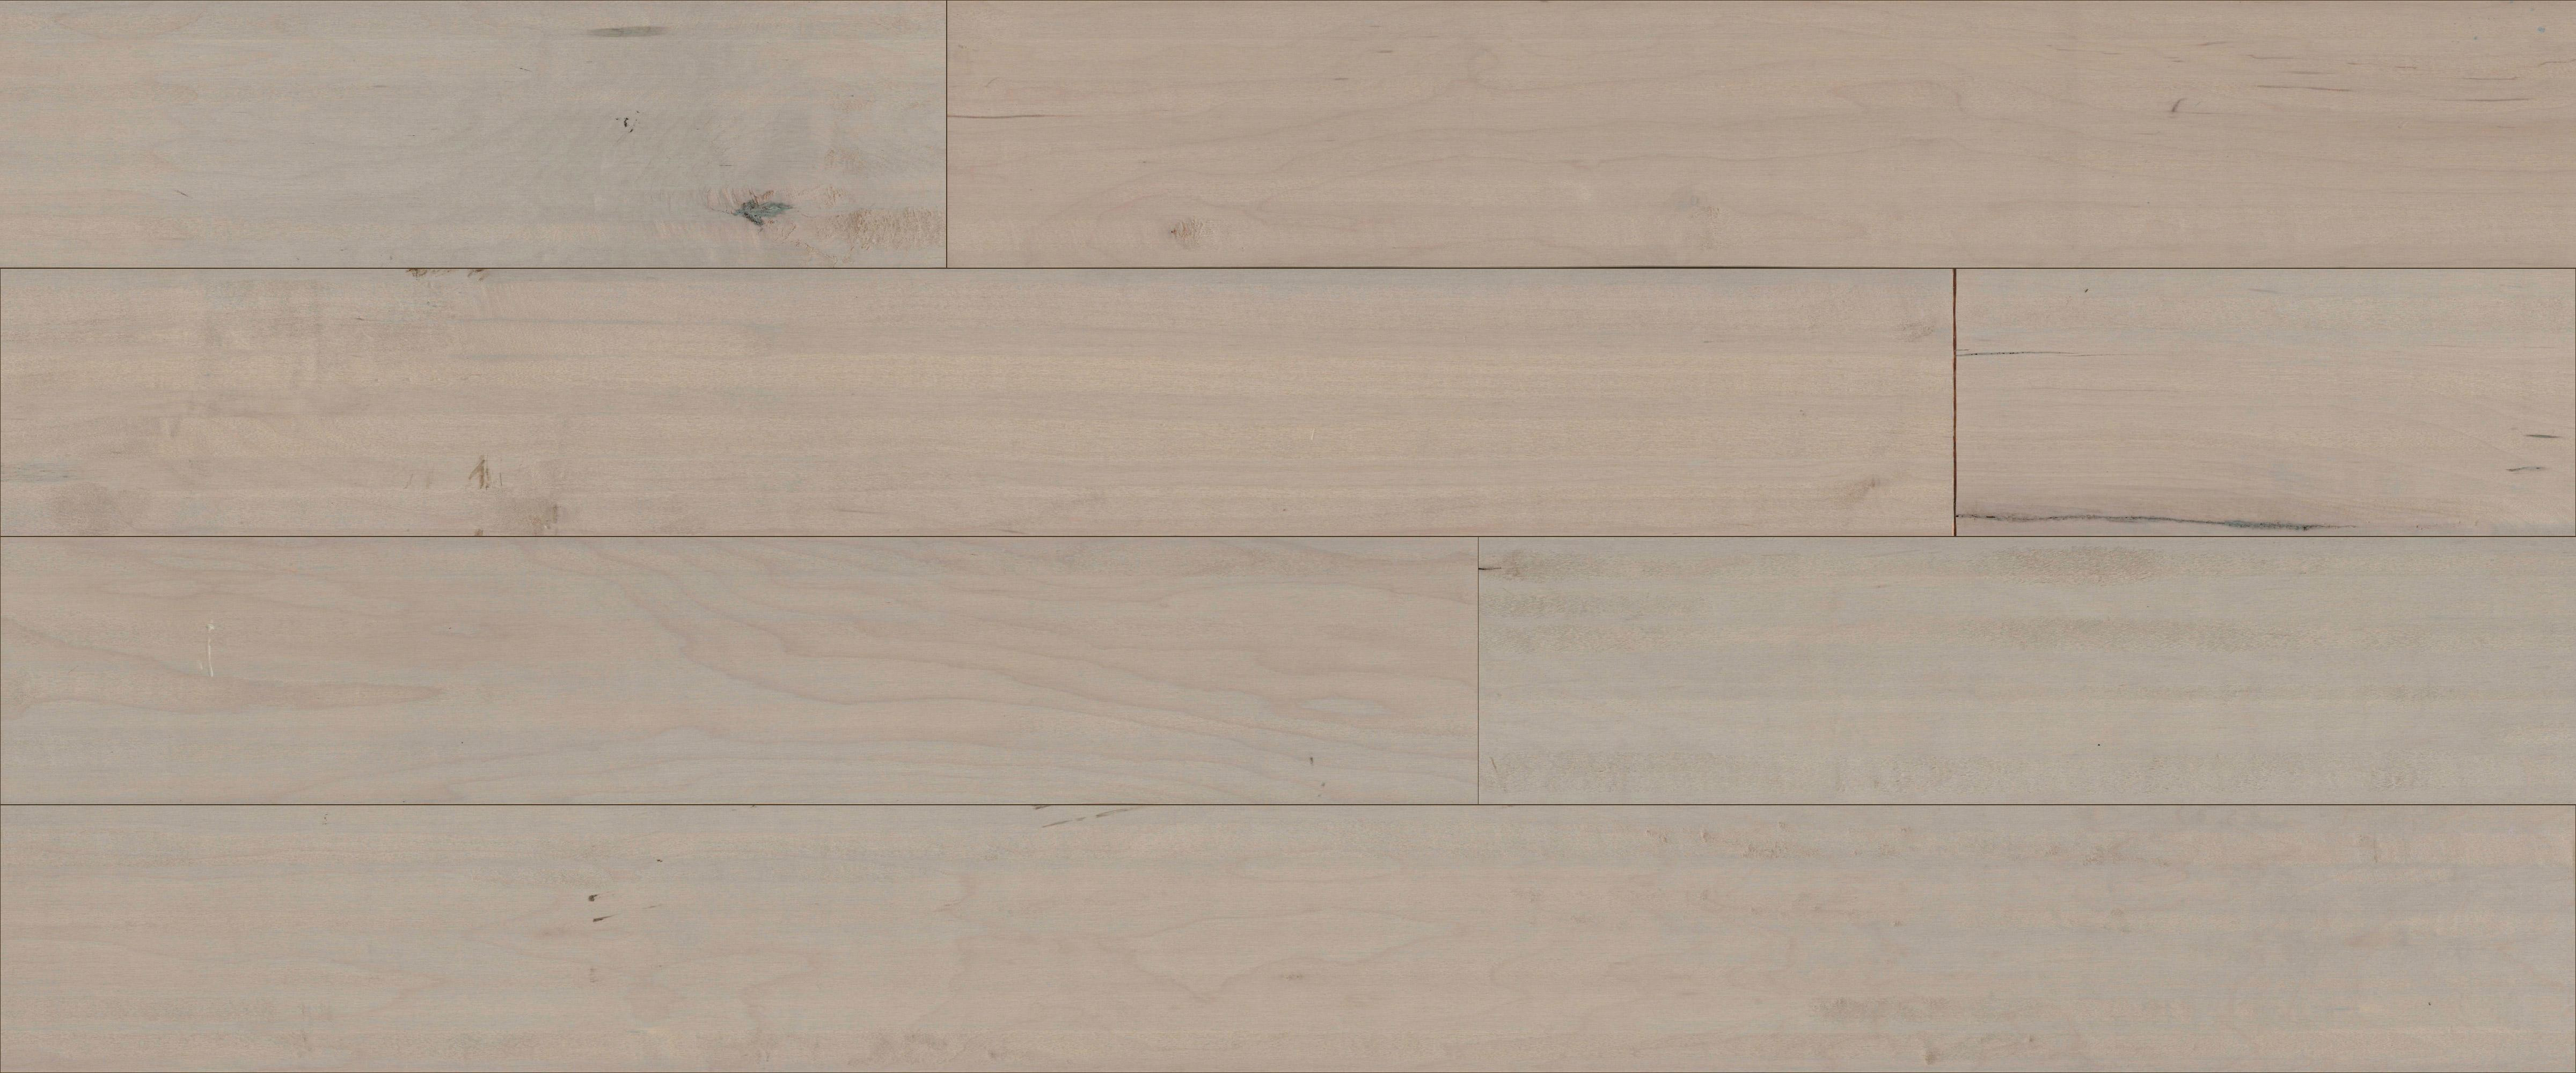 maple vs hickory hardwood floors of mullican lincolnshire sculpted maple frost 5 engineered hardwood with mullican lincolnshire sculpted maple frost 5 engineered hardwood flooring